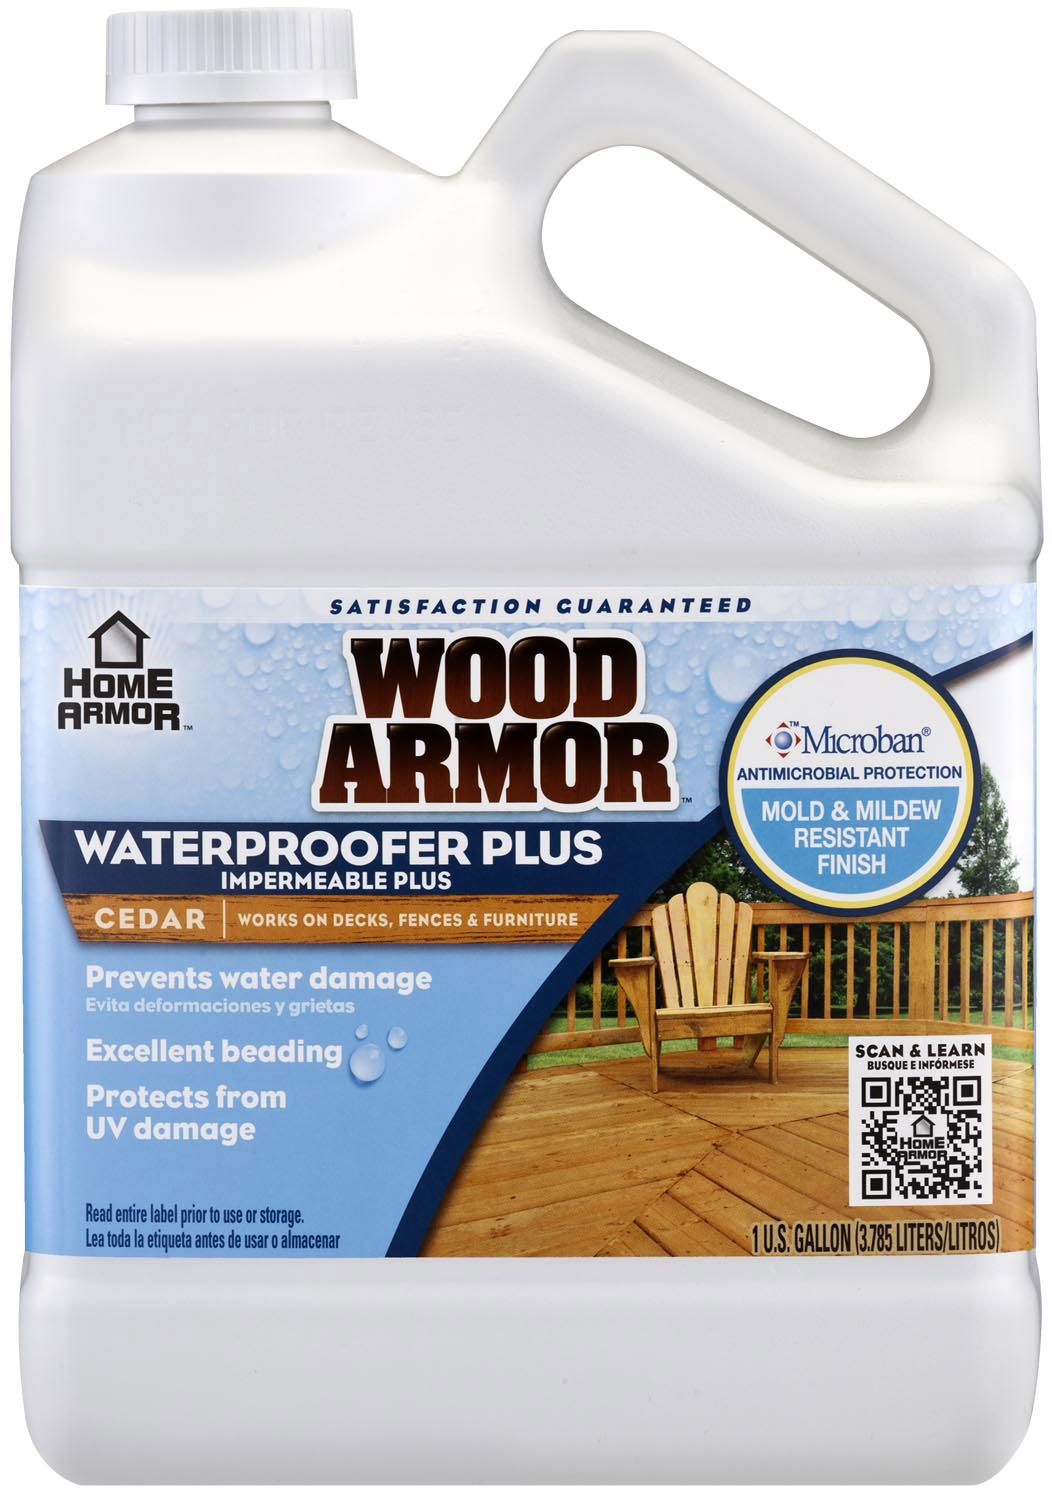 Home armor wood armor waterproofer plus discontinued for Sustainable home products